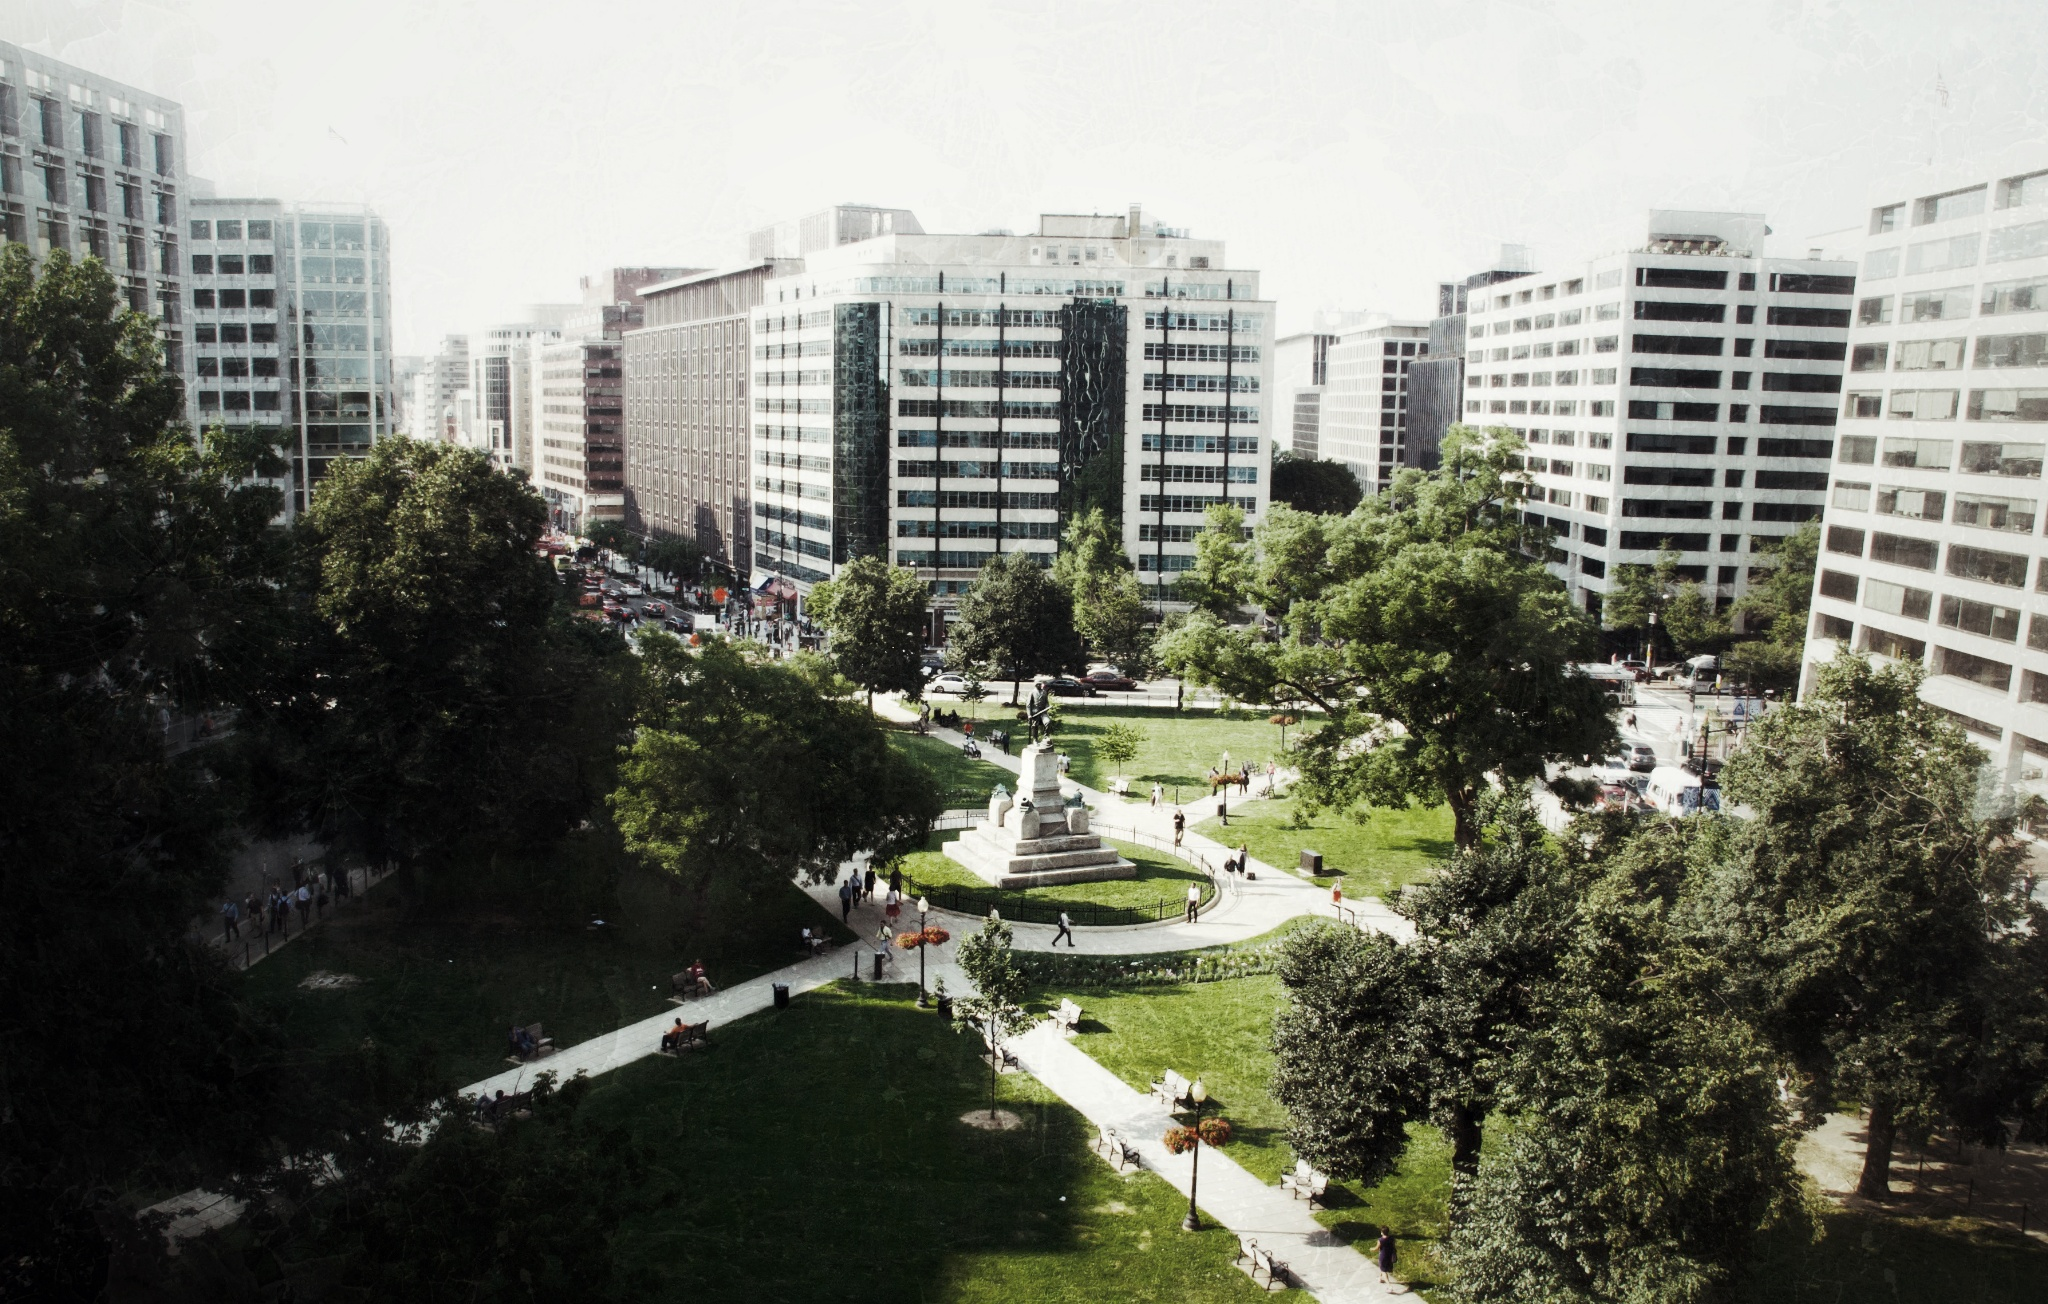 The view of Farragut Square from my office.